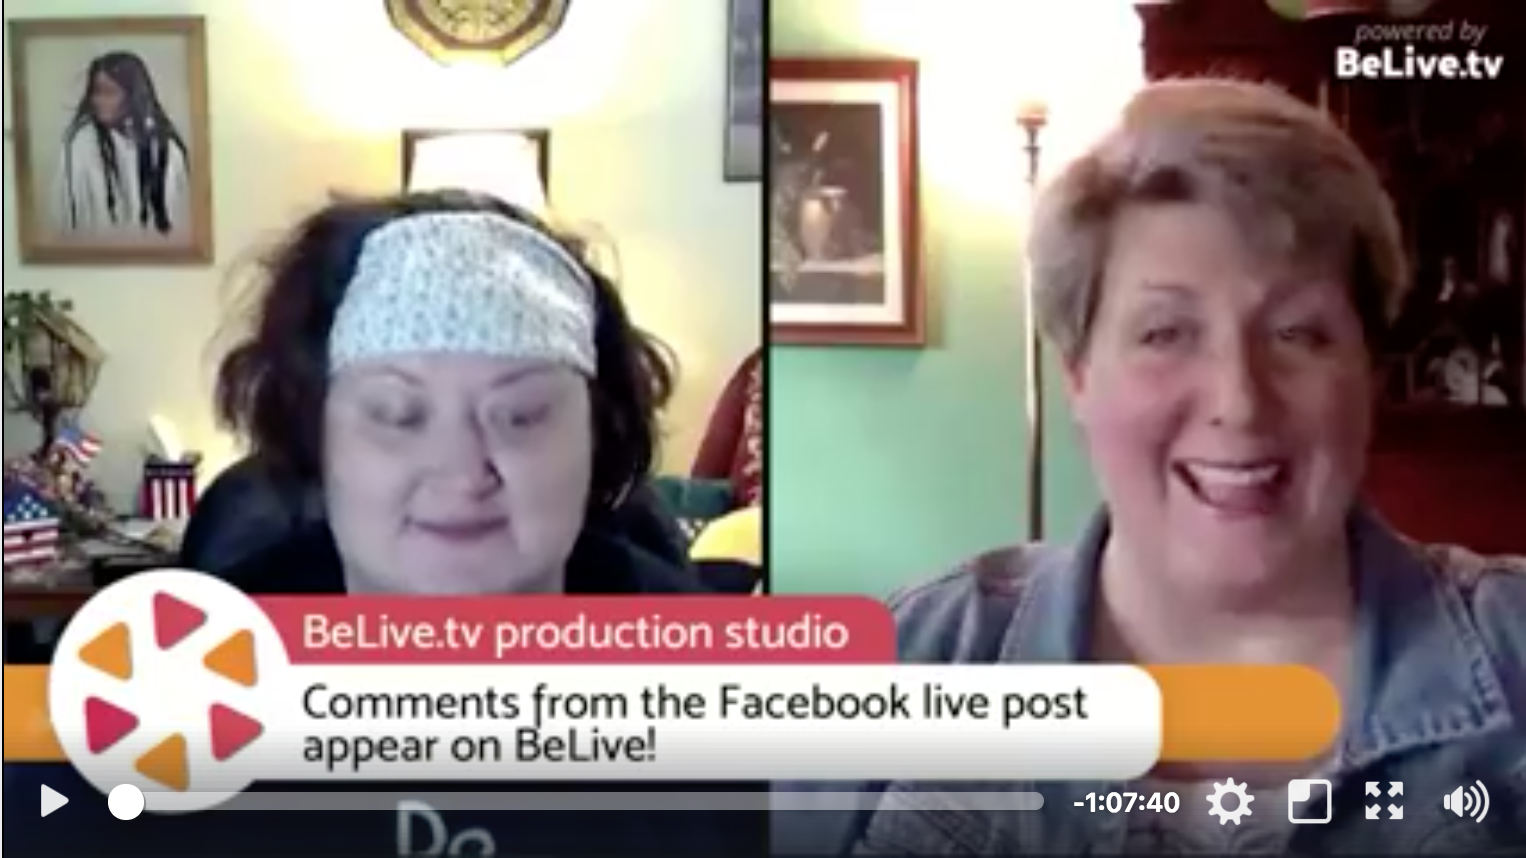 Facebook Marketing Strategy Tip for BeLive.tv as explained by Keri Jaehnig for Idea Girl Media